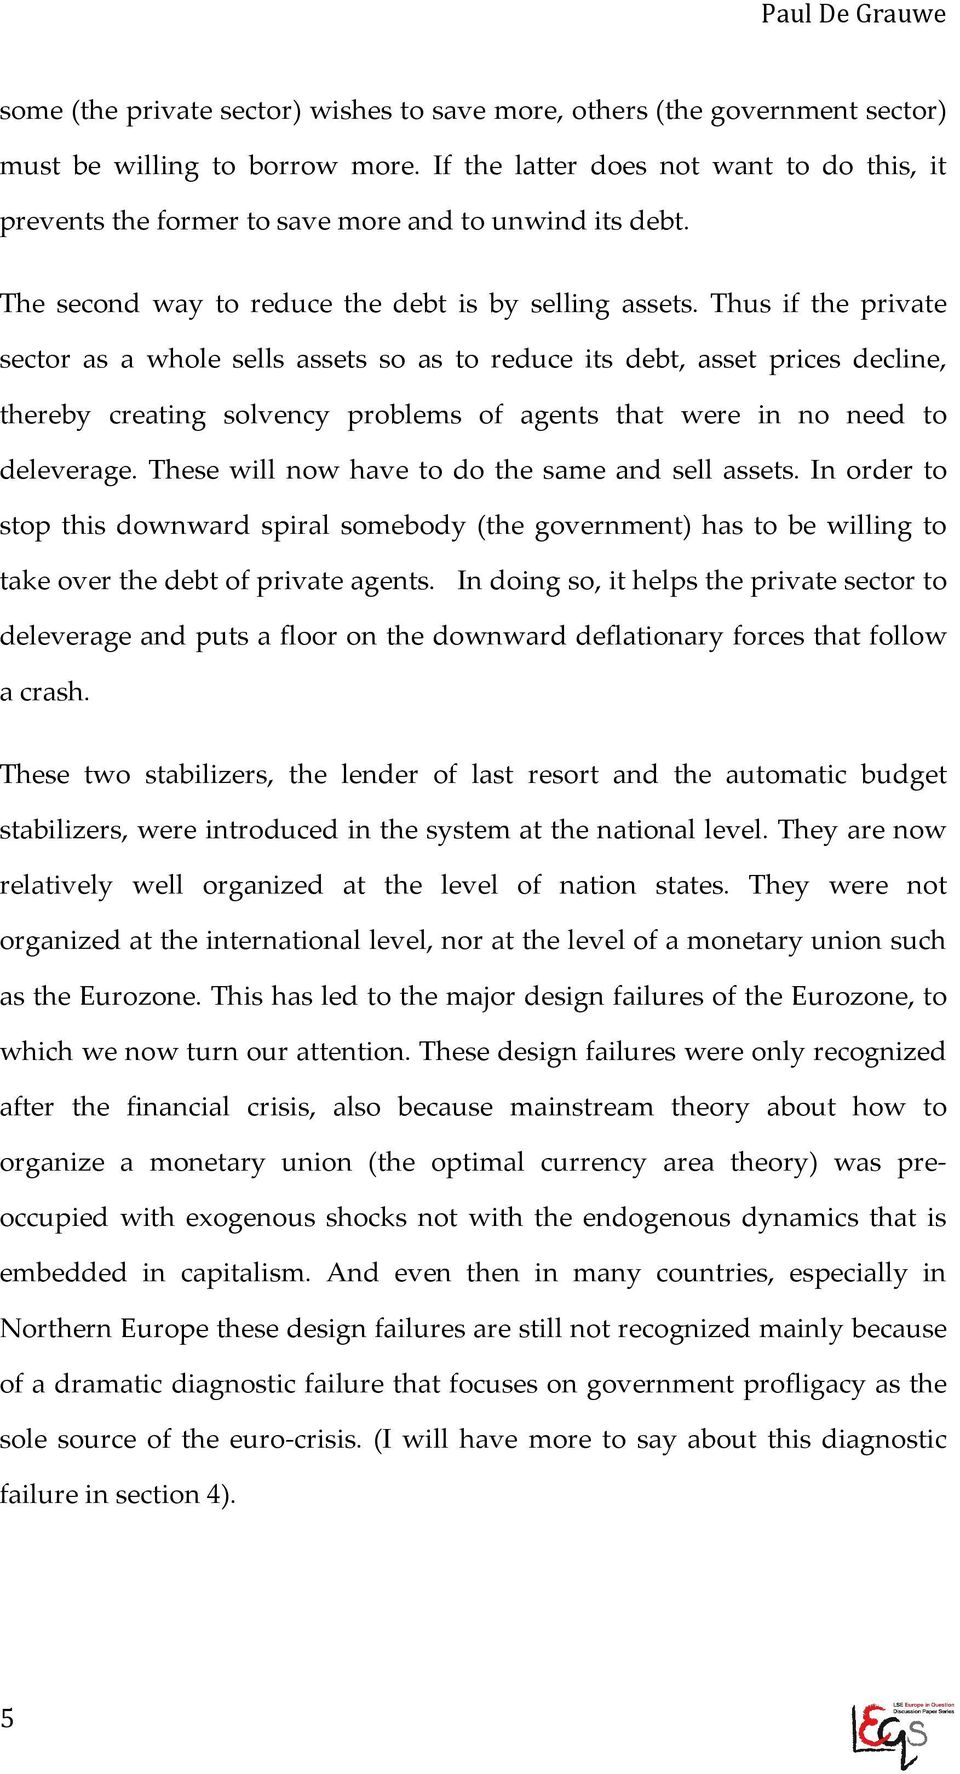 Thus if the private sector as a whole sells assets so as to reduce its debt, asset prices decline, thereby creating solvency problems of agents that were in no need to deleverage.